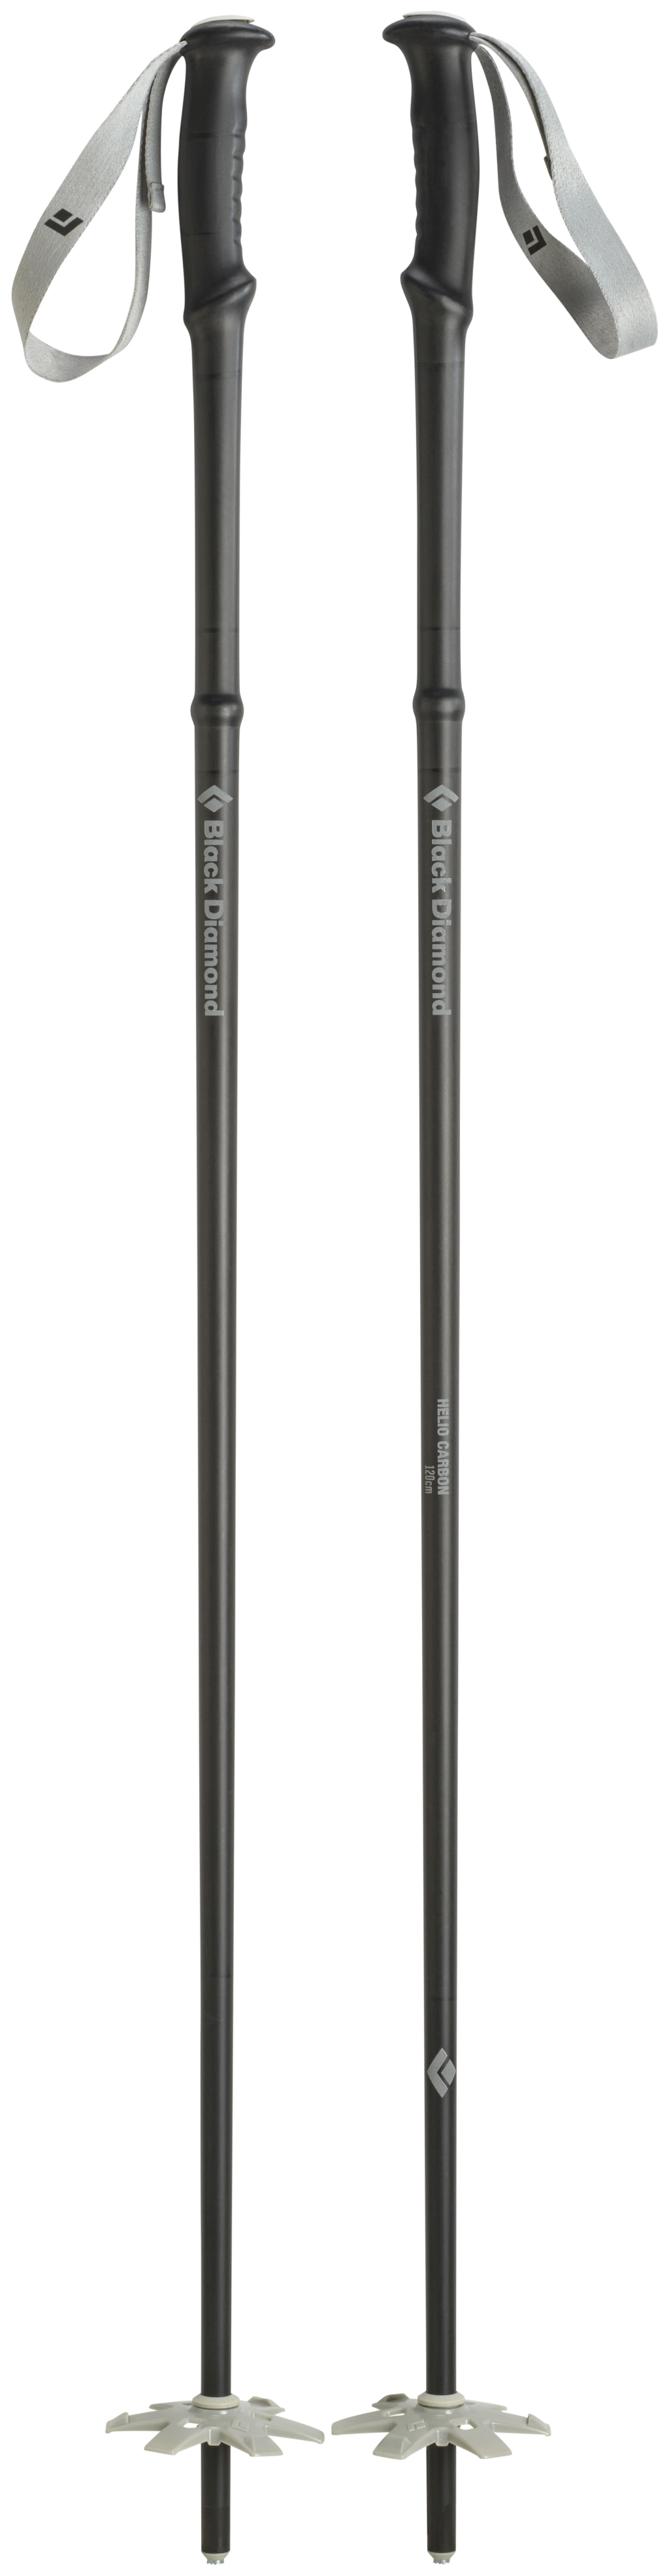 Black Diamond Helio Fixed Length Carbon Ski Poles No Color-30